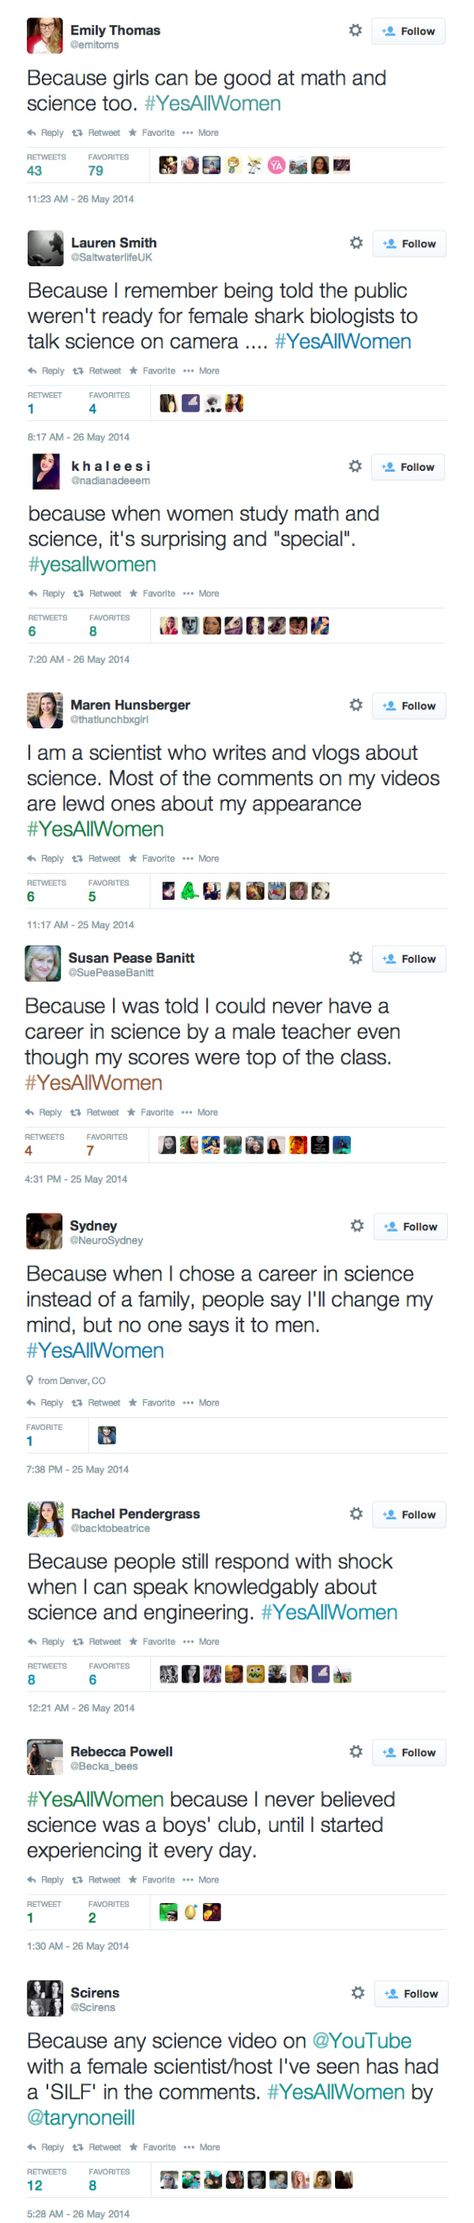 #YesAllWomen tweets reveal persistent sexism in science The fact of the matter is, math and science are universal. That means gender-neutral too.